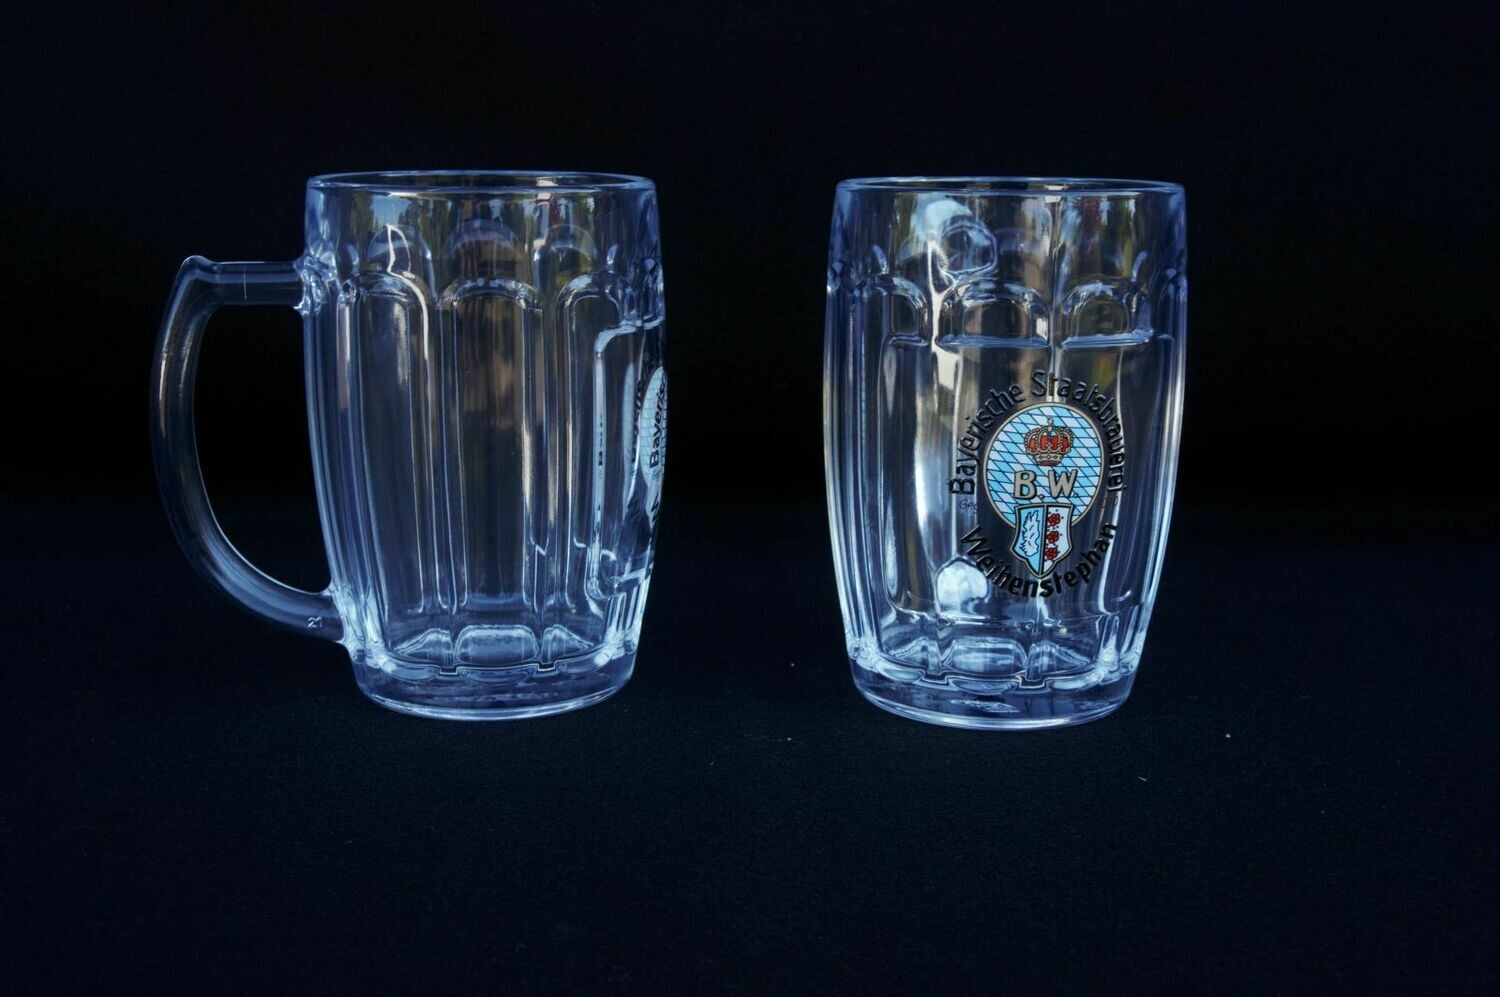 Weihenstephan Glass Stein - small 0.3 liter